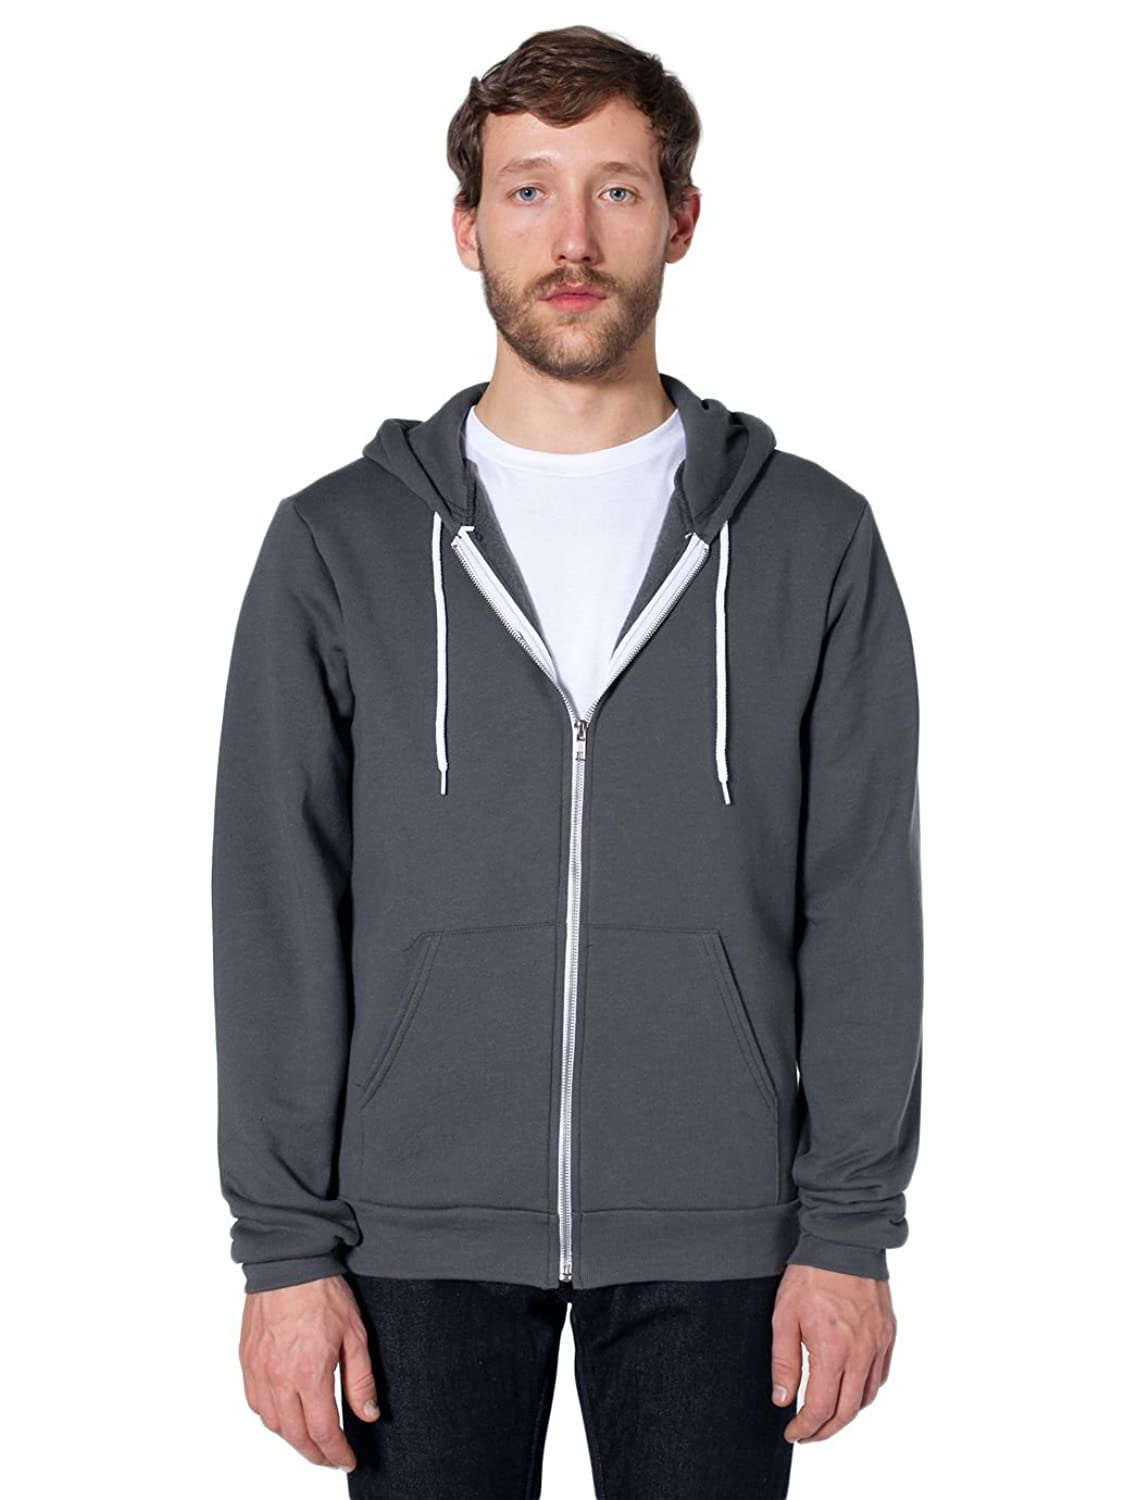 100 How To Design Your Own Hoodie At Home 41